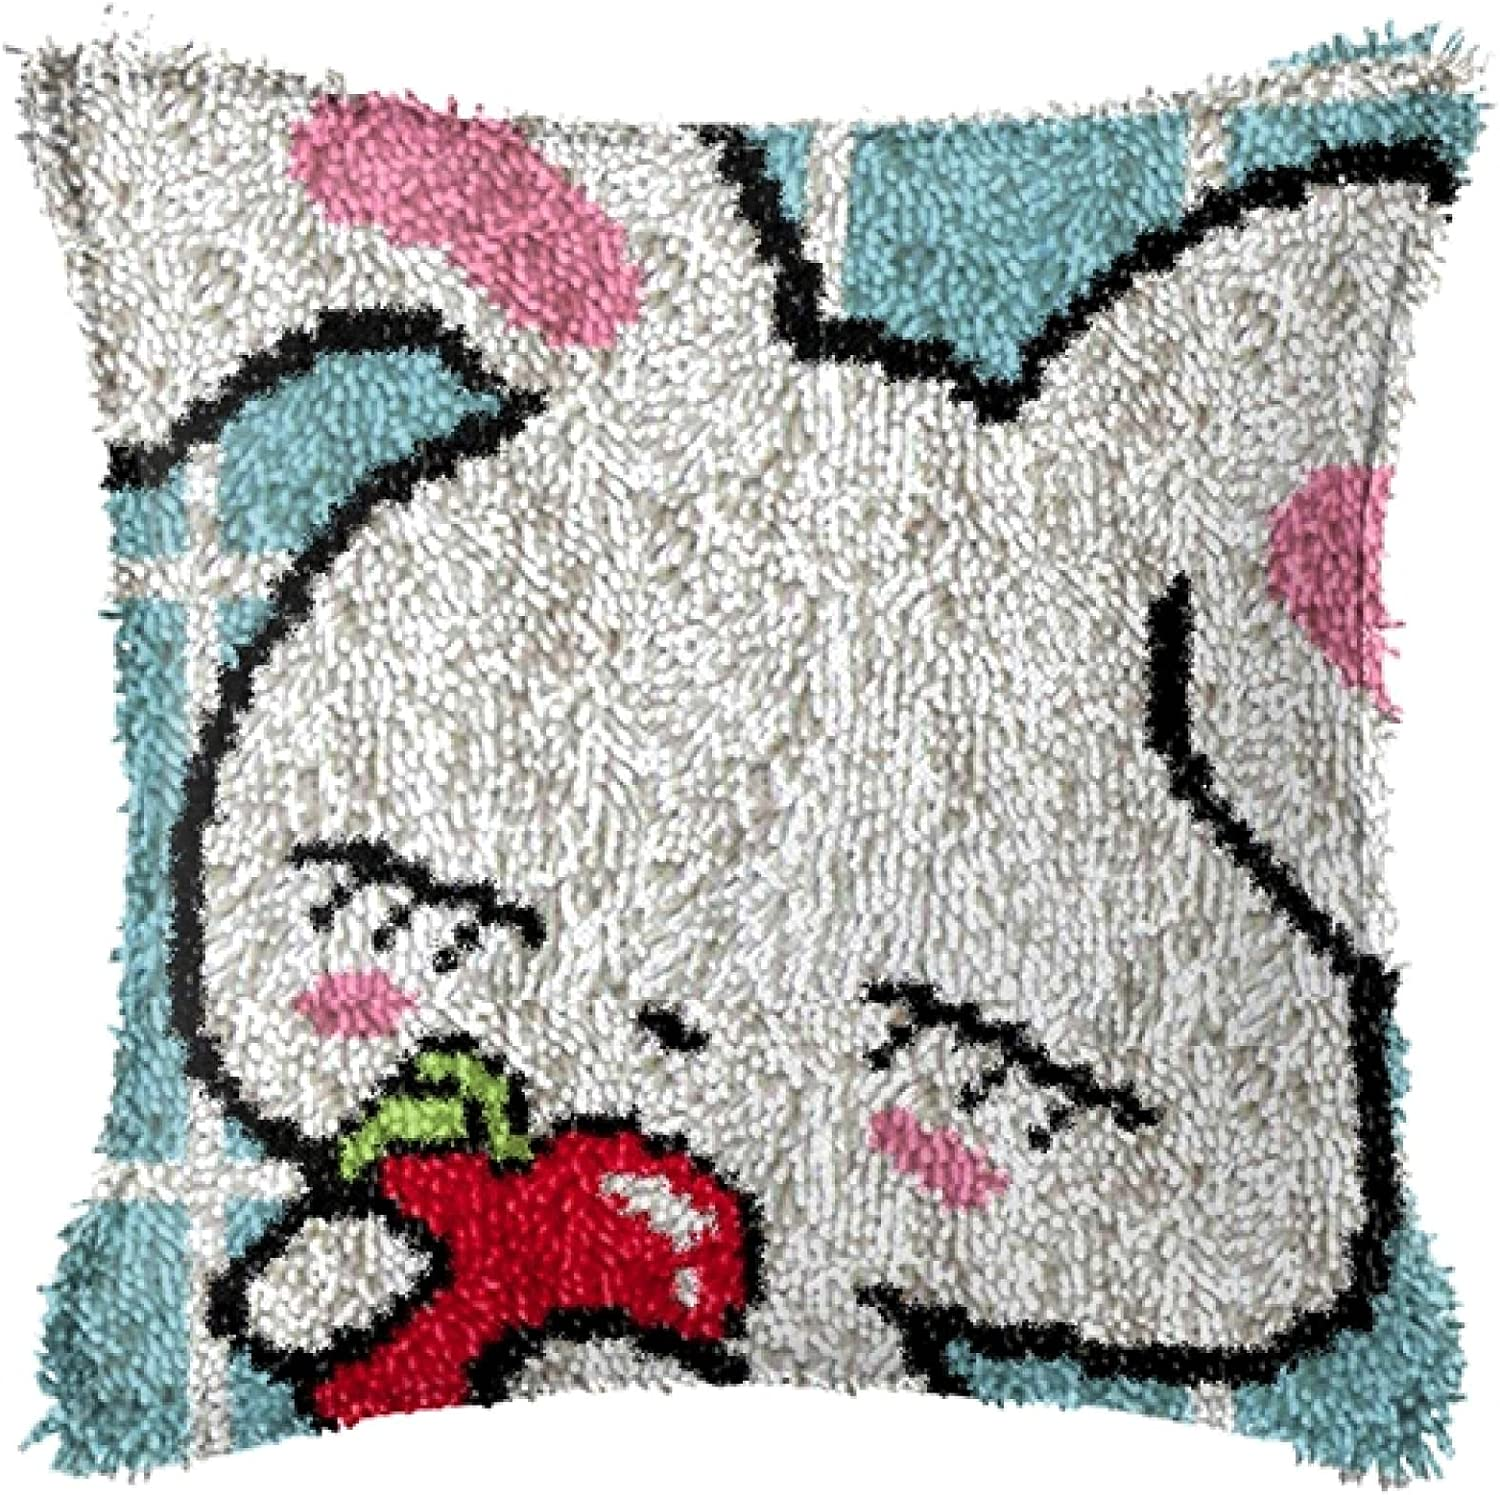 DIY Latch Limited price sale Hook Kits Throw Pillow f Needlework Crafts Gorgeous Rug Crochet